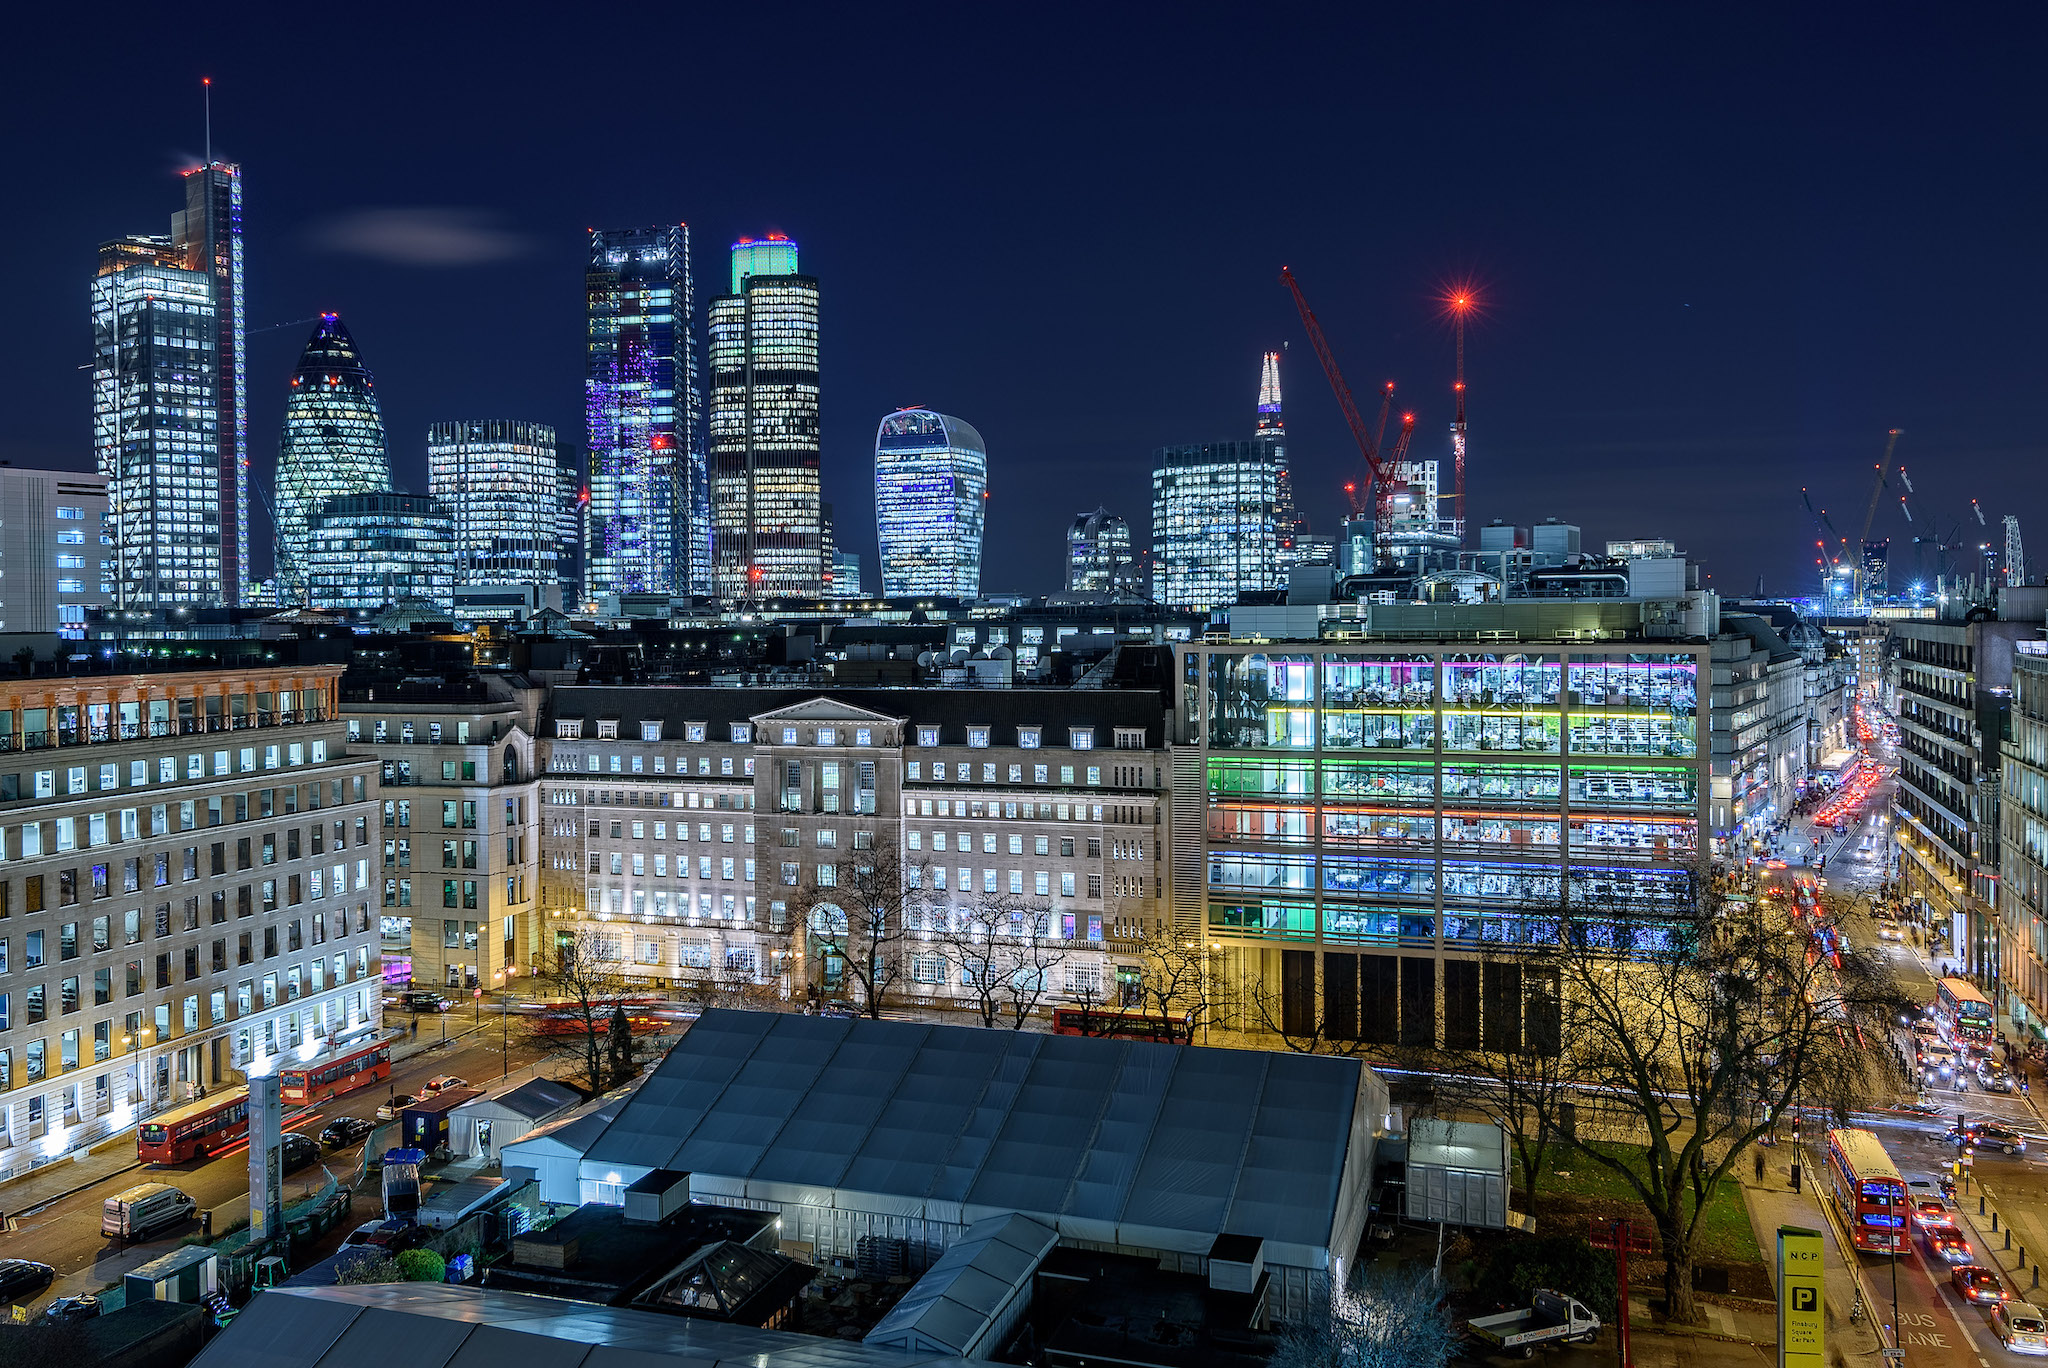 Skyline of the City of London at night.